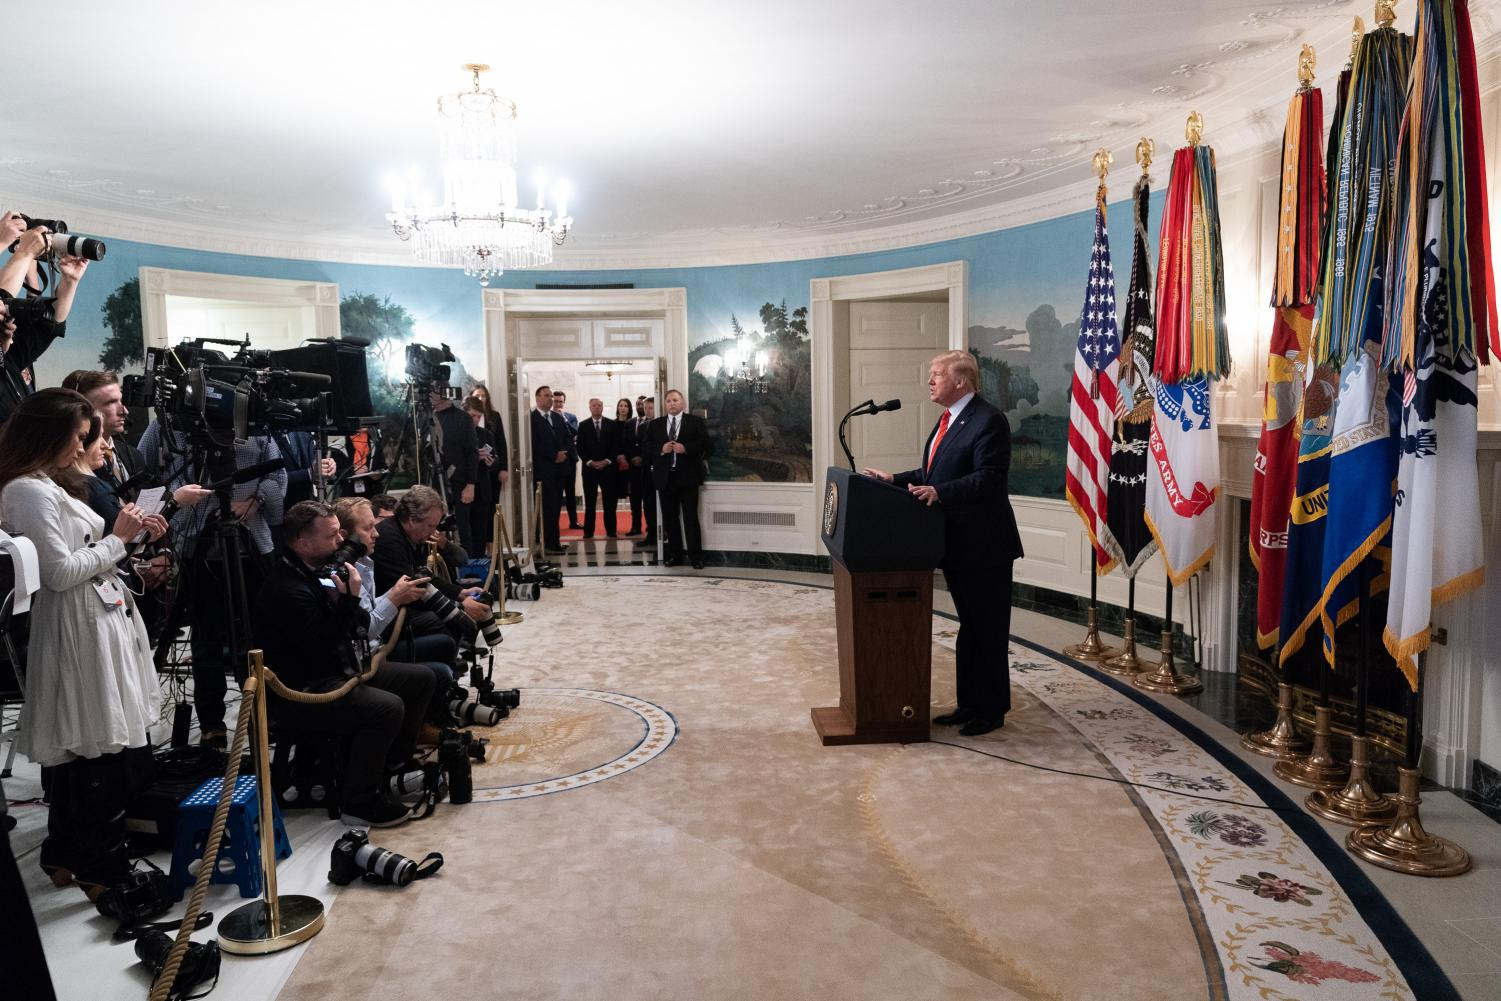 Trump announces details of the mission to the press in the Diplomatic Reception Room of the White House.